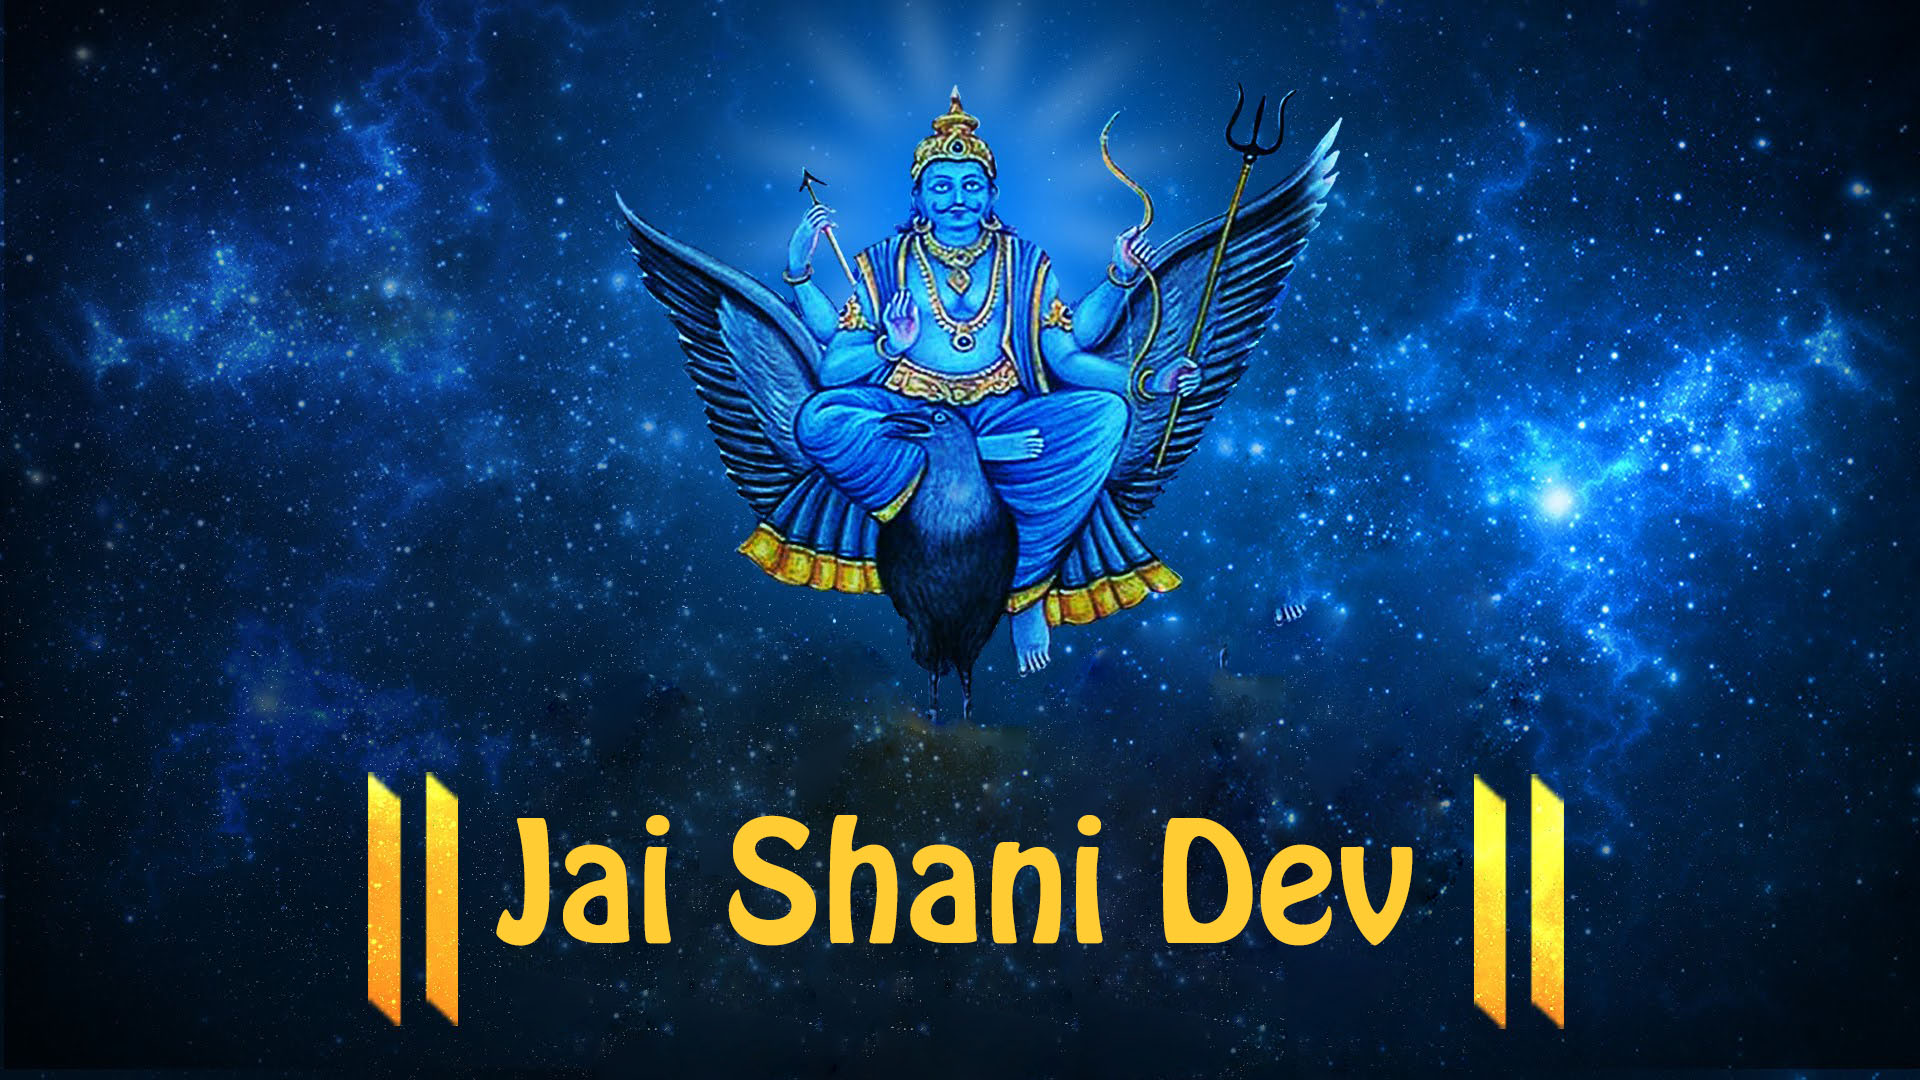 Jai Shani Dev Hd Wallpaper